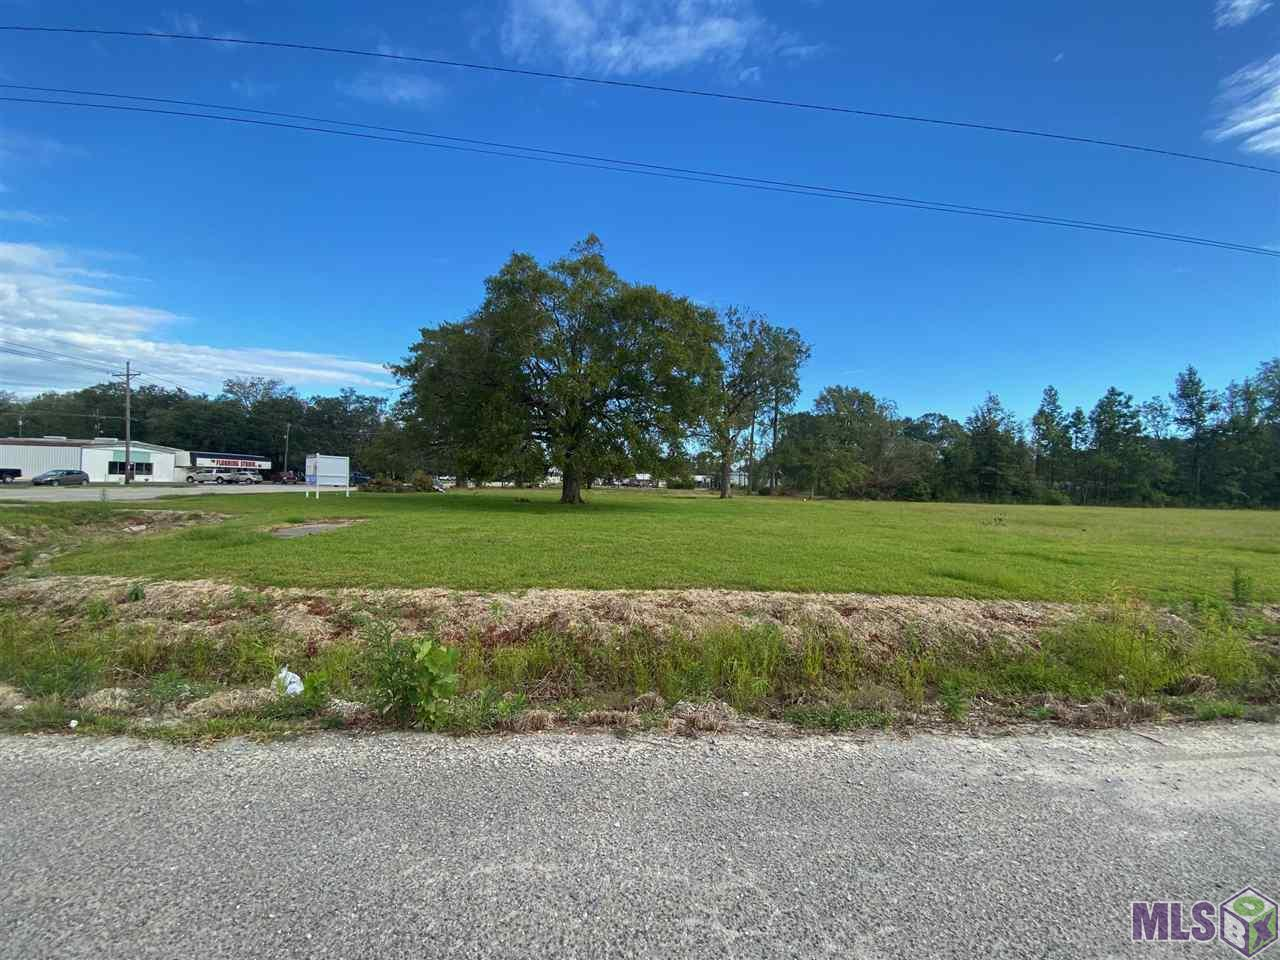 Commercial land zoned mixed use (MU) located directly on Hwy 44 in Gonzales. This property is approximately 2.83+/- acres of cleared land and provides 410' of street frontage facing Hwy 44.